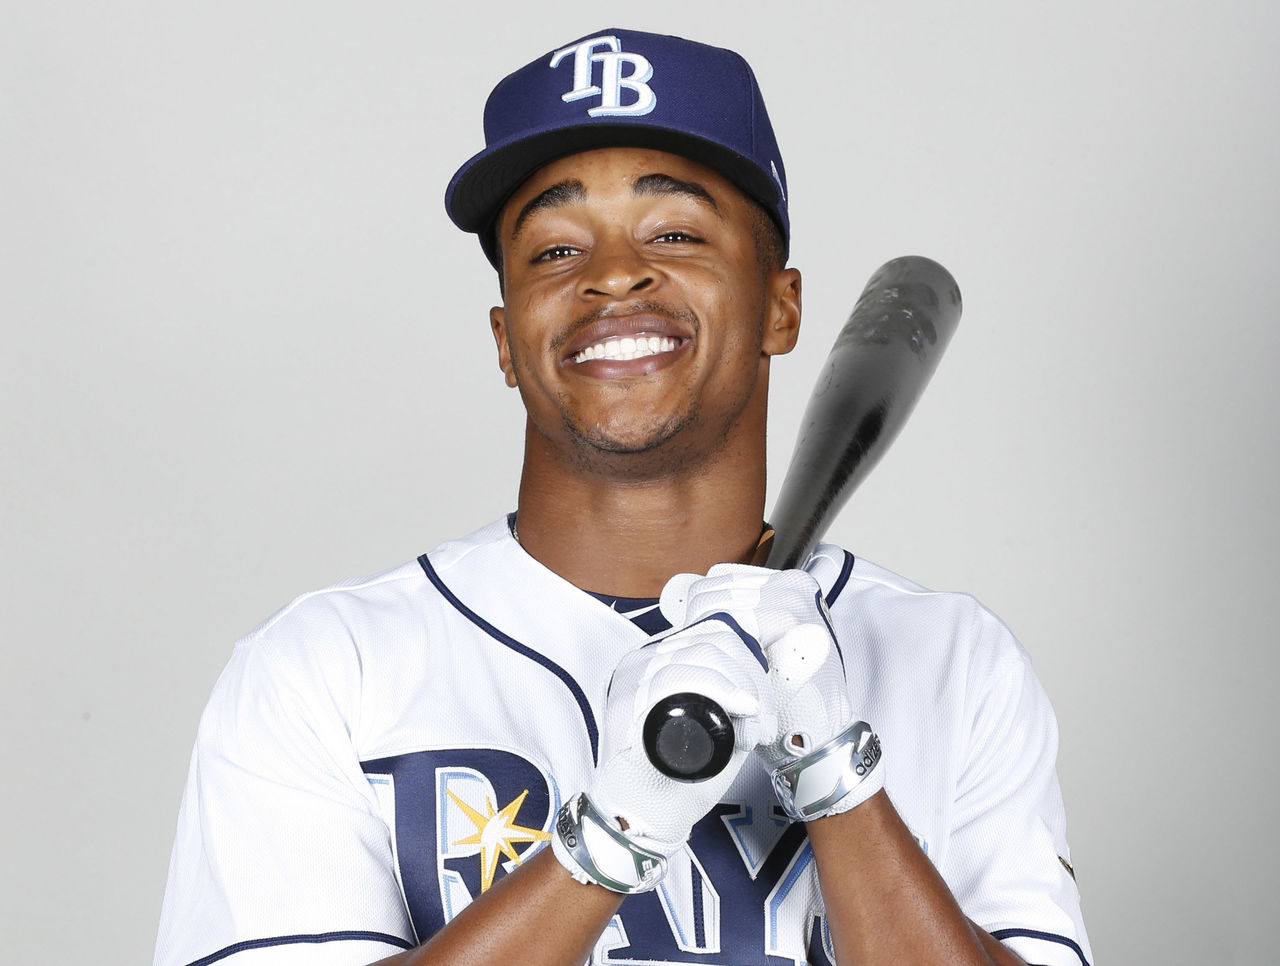 Cropped 2017 02 19t090335z 634773035 nocid rtrmadp 3 mlb tampa bay rays media day